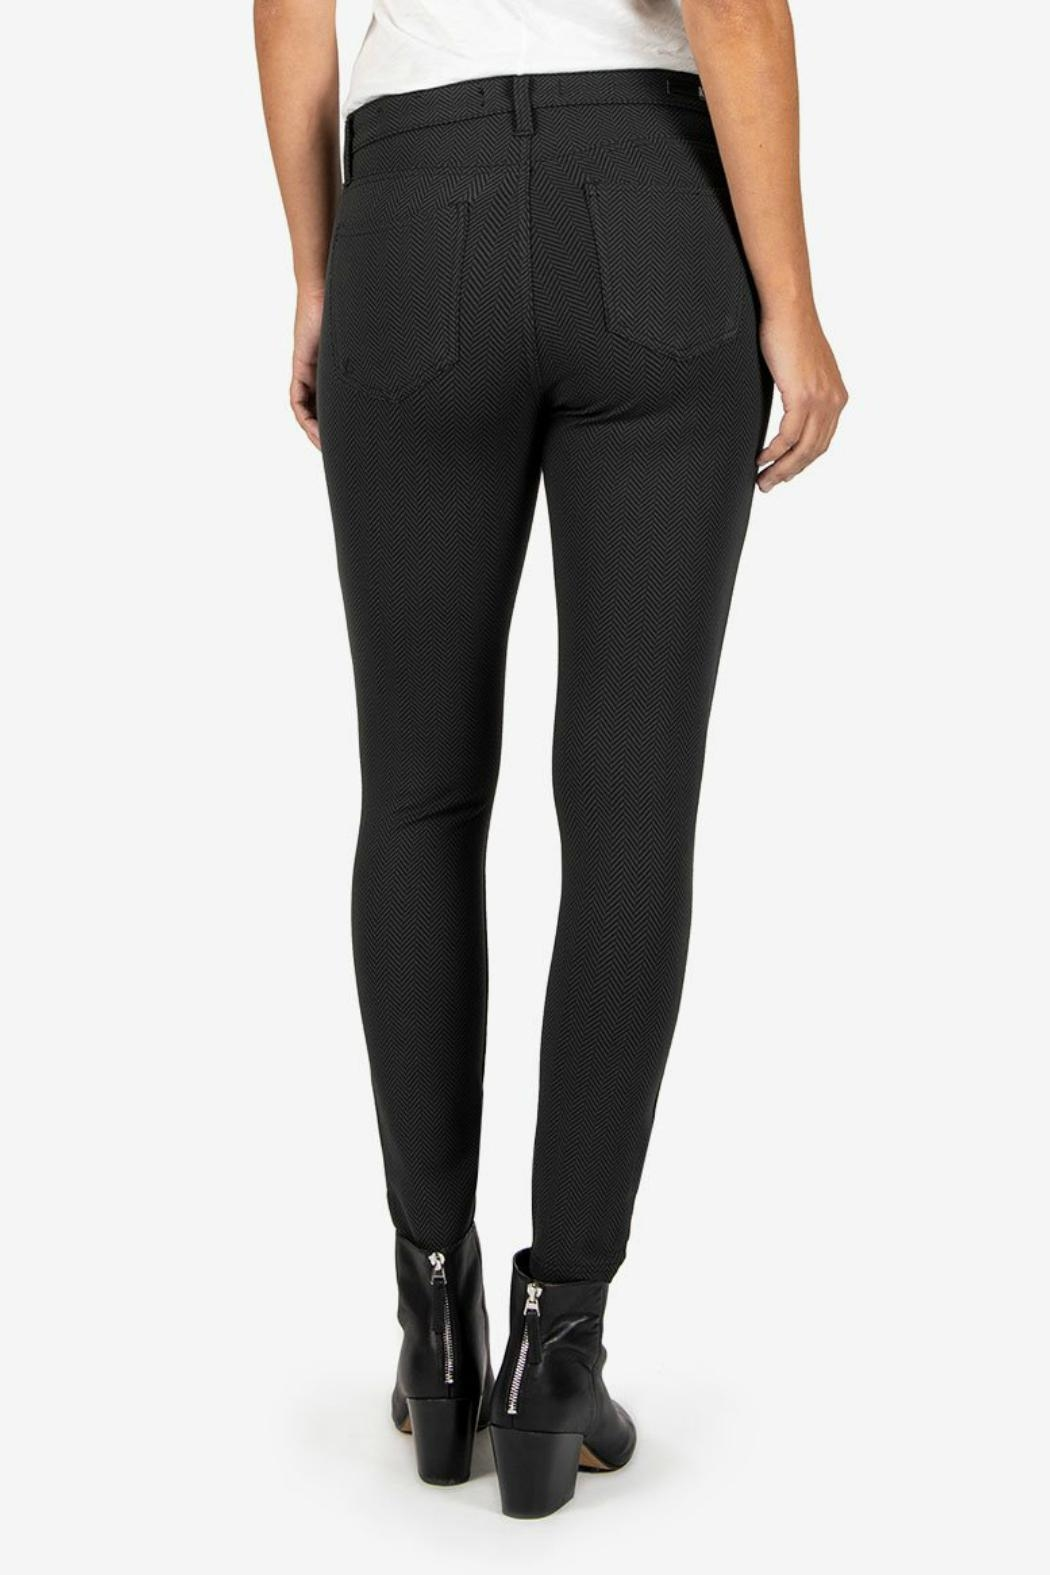 Kut from the Kloth Donna Ponte Ankle-Skinny - Front Full Image